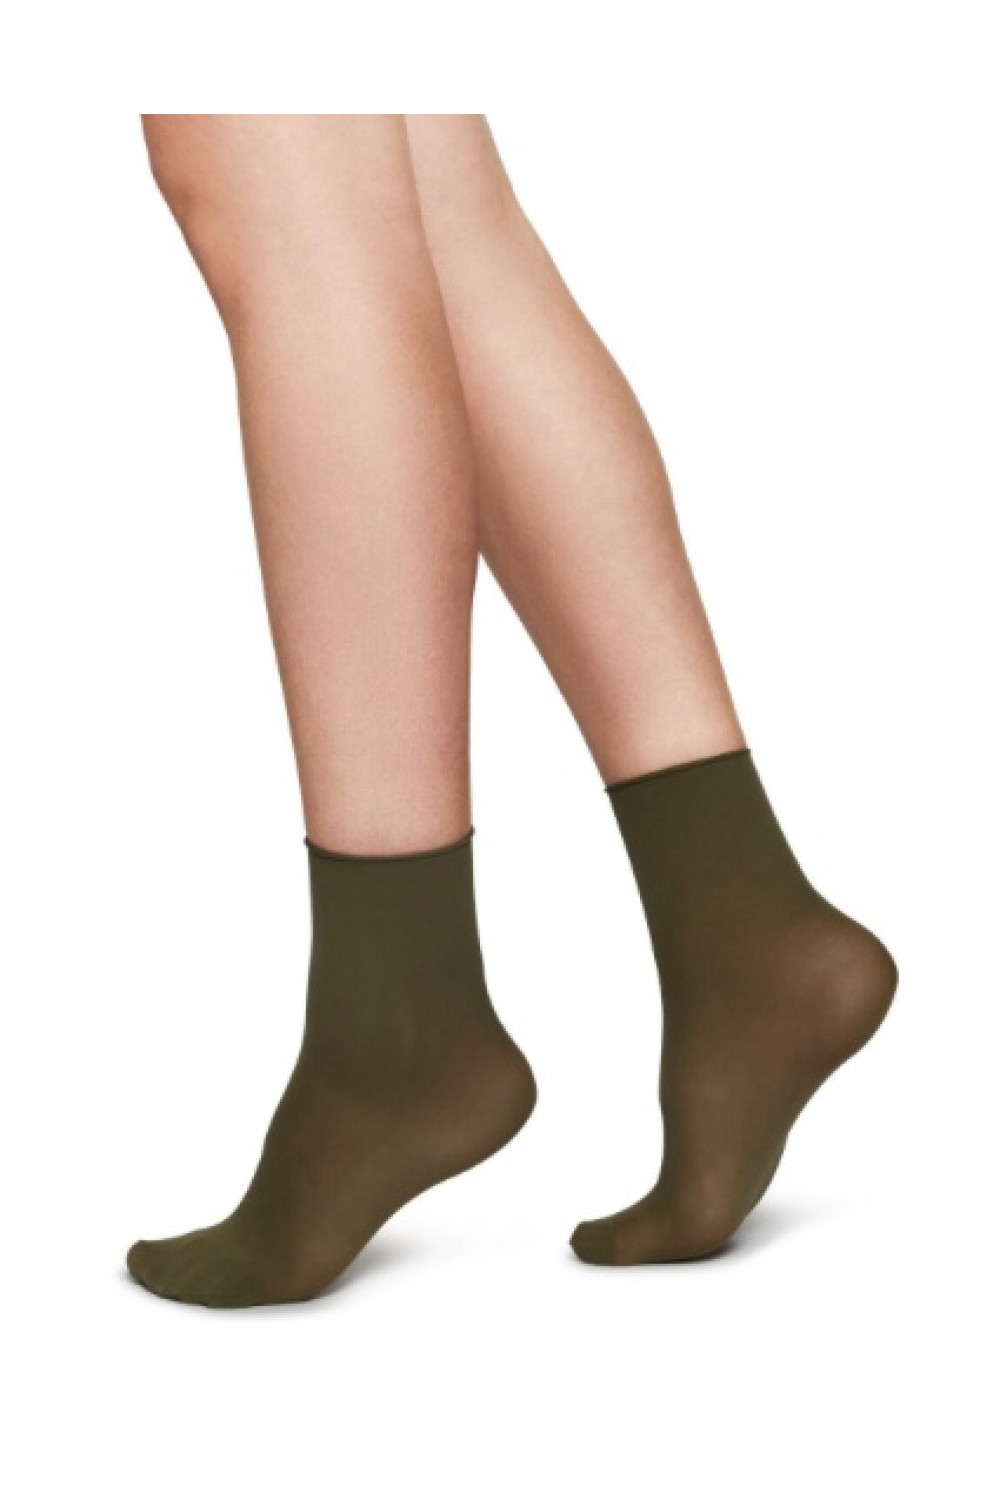 Judith Premium socks - 2-pack - Khaki,  Swedish Stockings